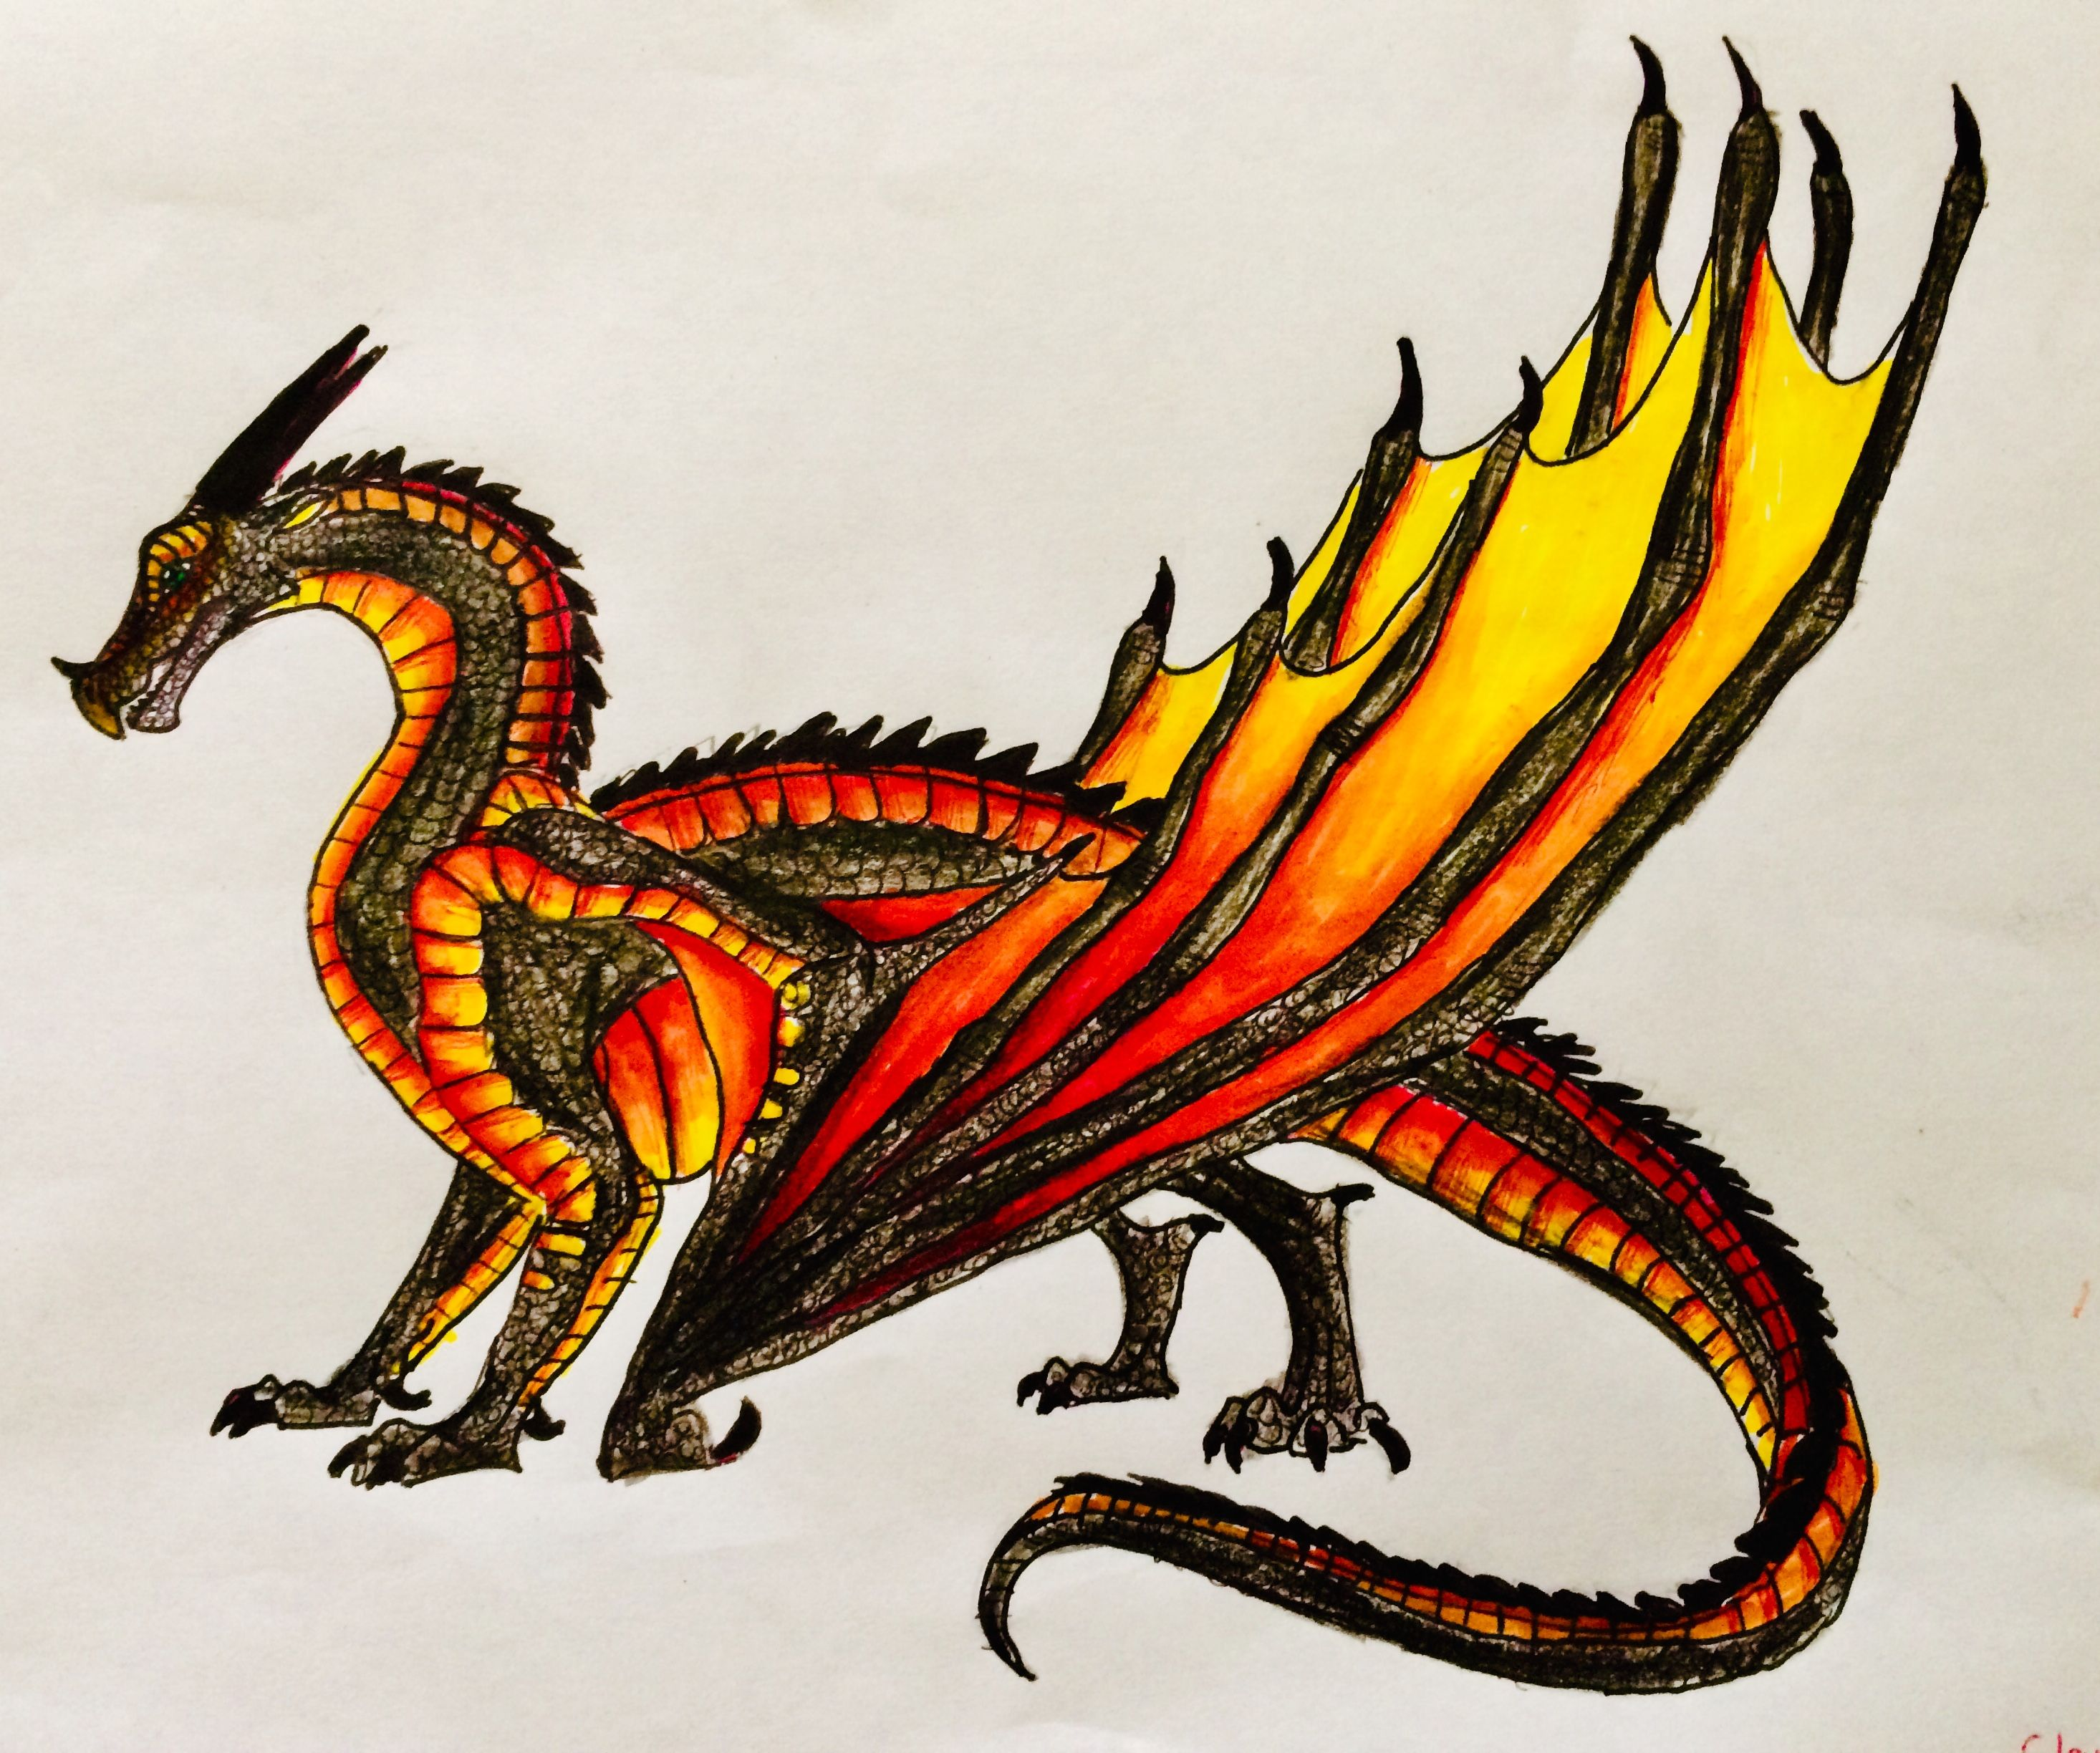 Nightwing Skywing Hybrid Wings Of Fire Dragons Wings Of Fire Fire Dragon